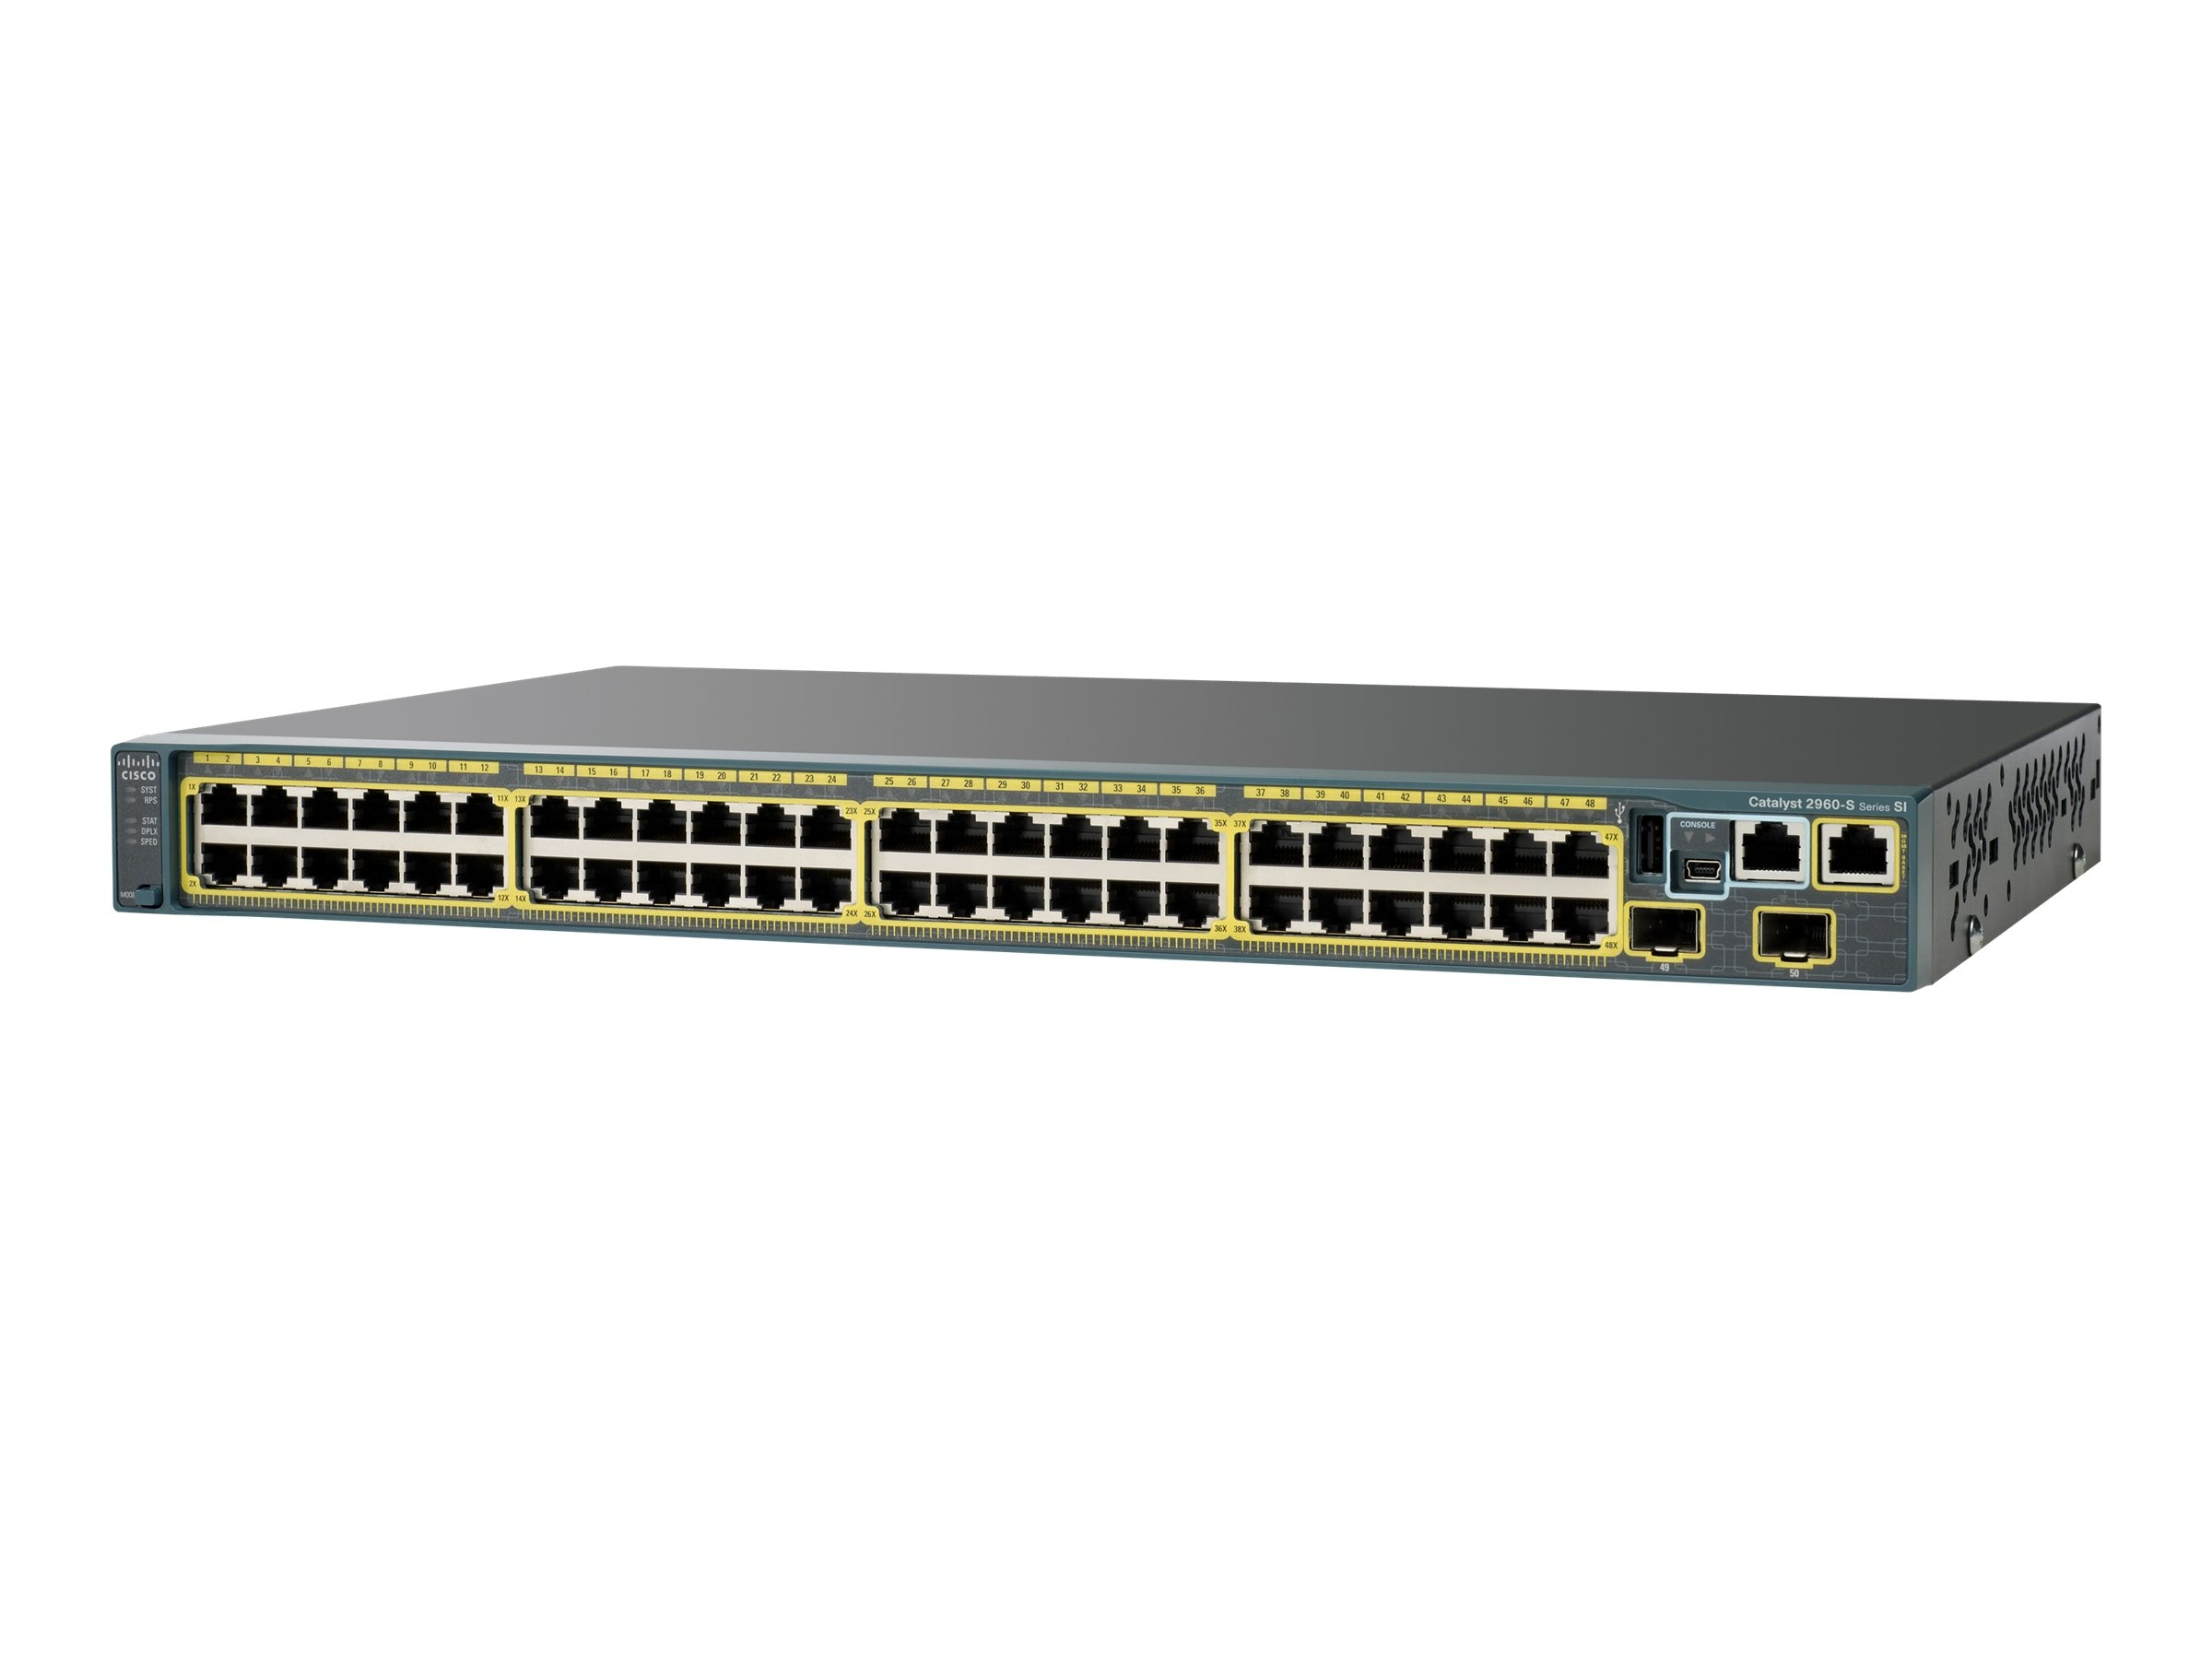 Open Box Cisco Catalyst 2960S Stack 48 GIGE-4 X SFP LAN Base, WS-C2960S-48TS-L, 12906782, Network Switches